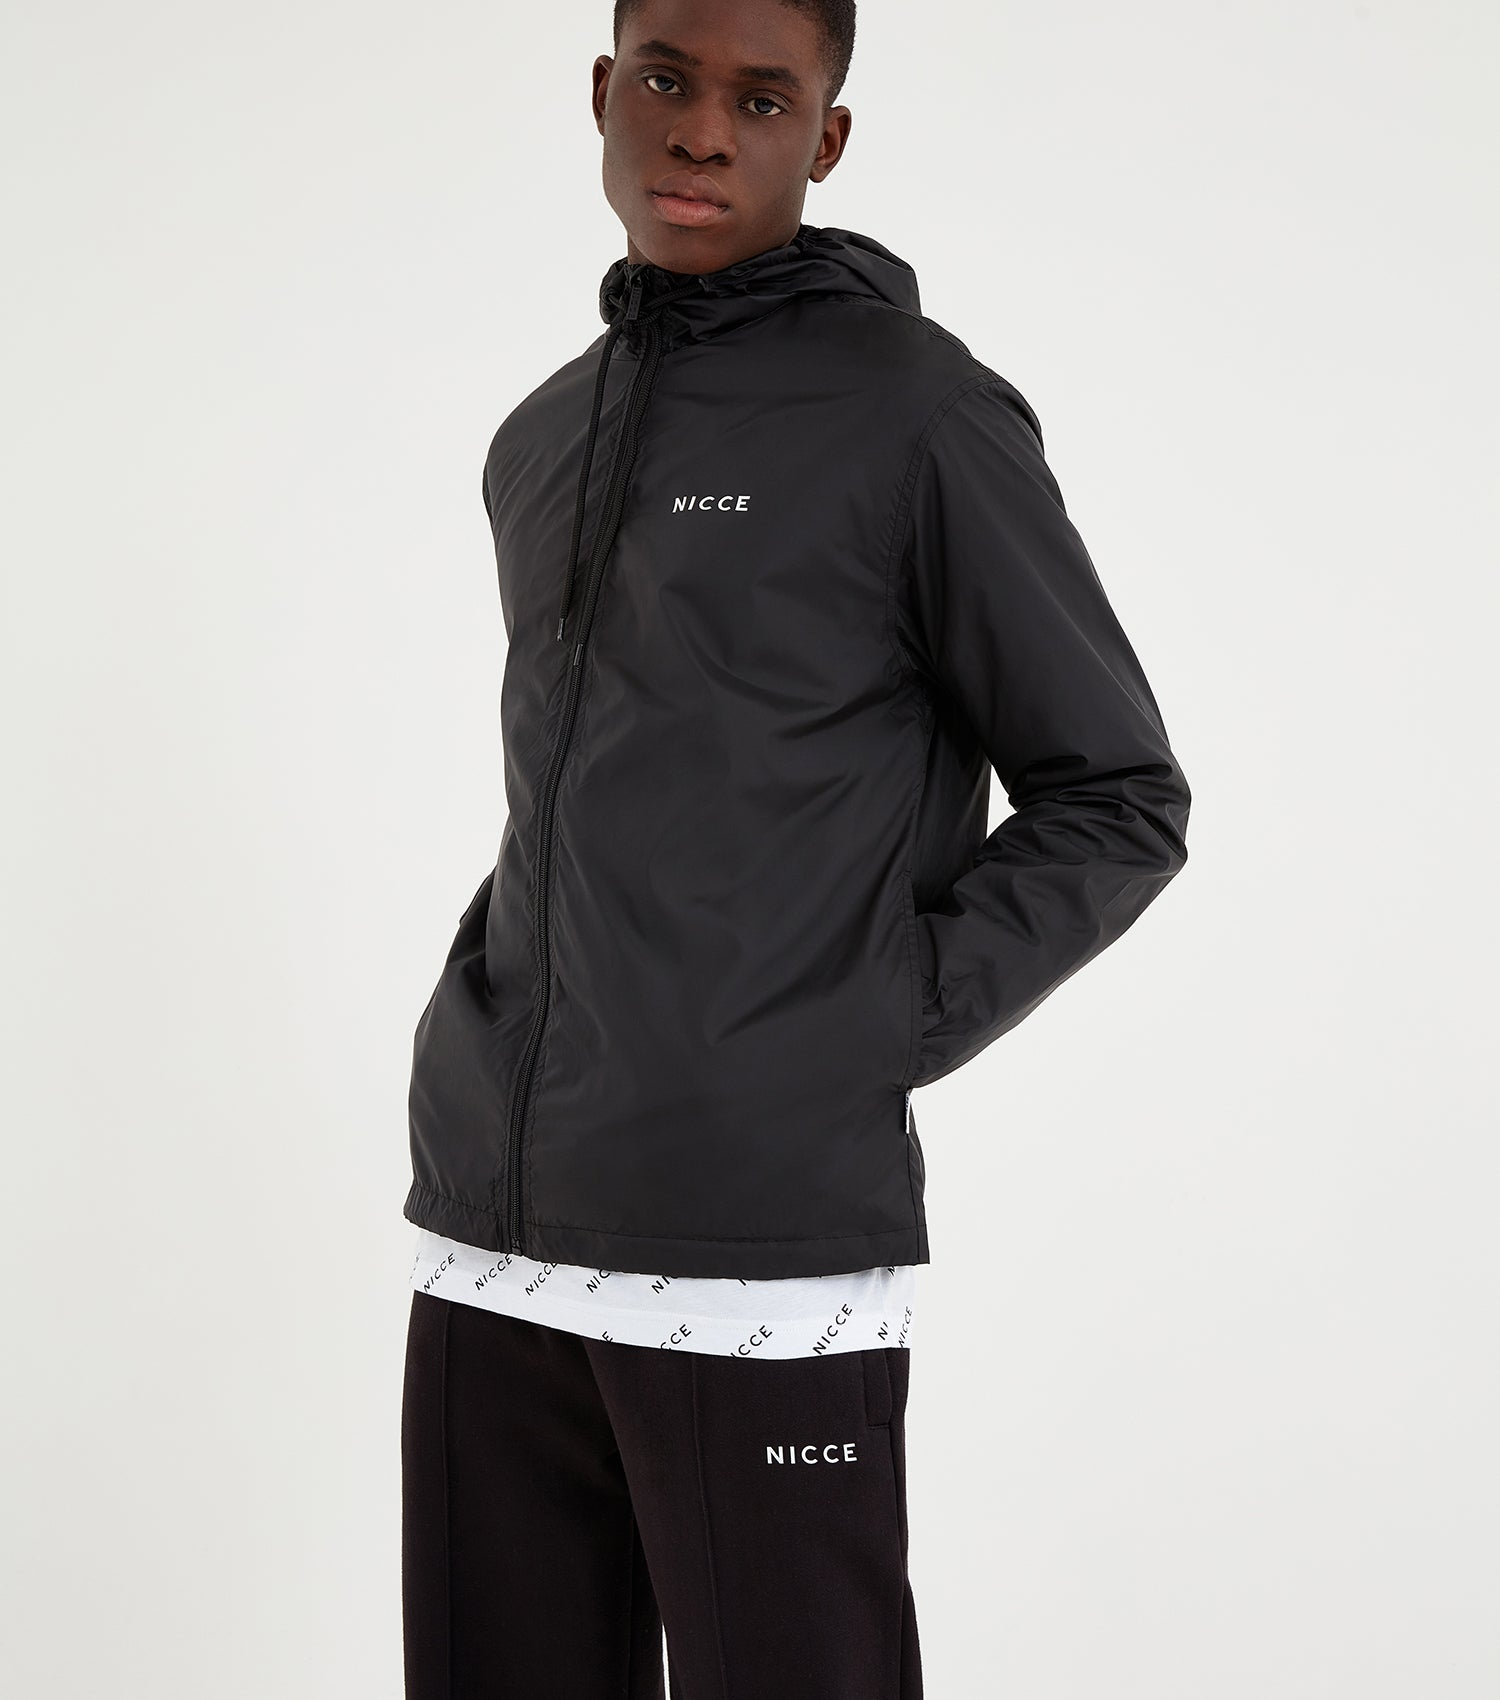 NICCE Mens Core Windbreaker | Black, Outerwear